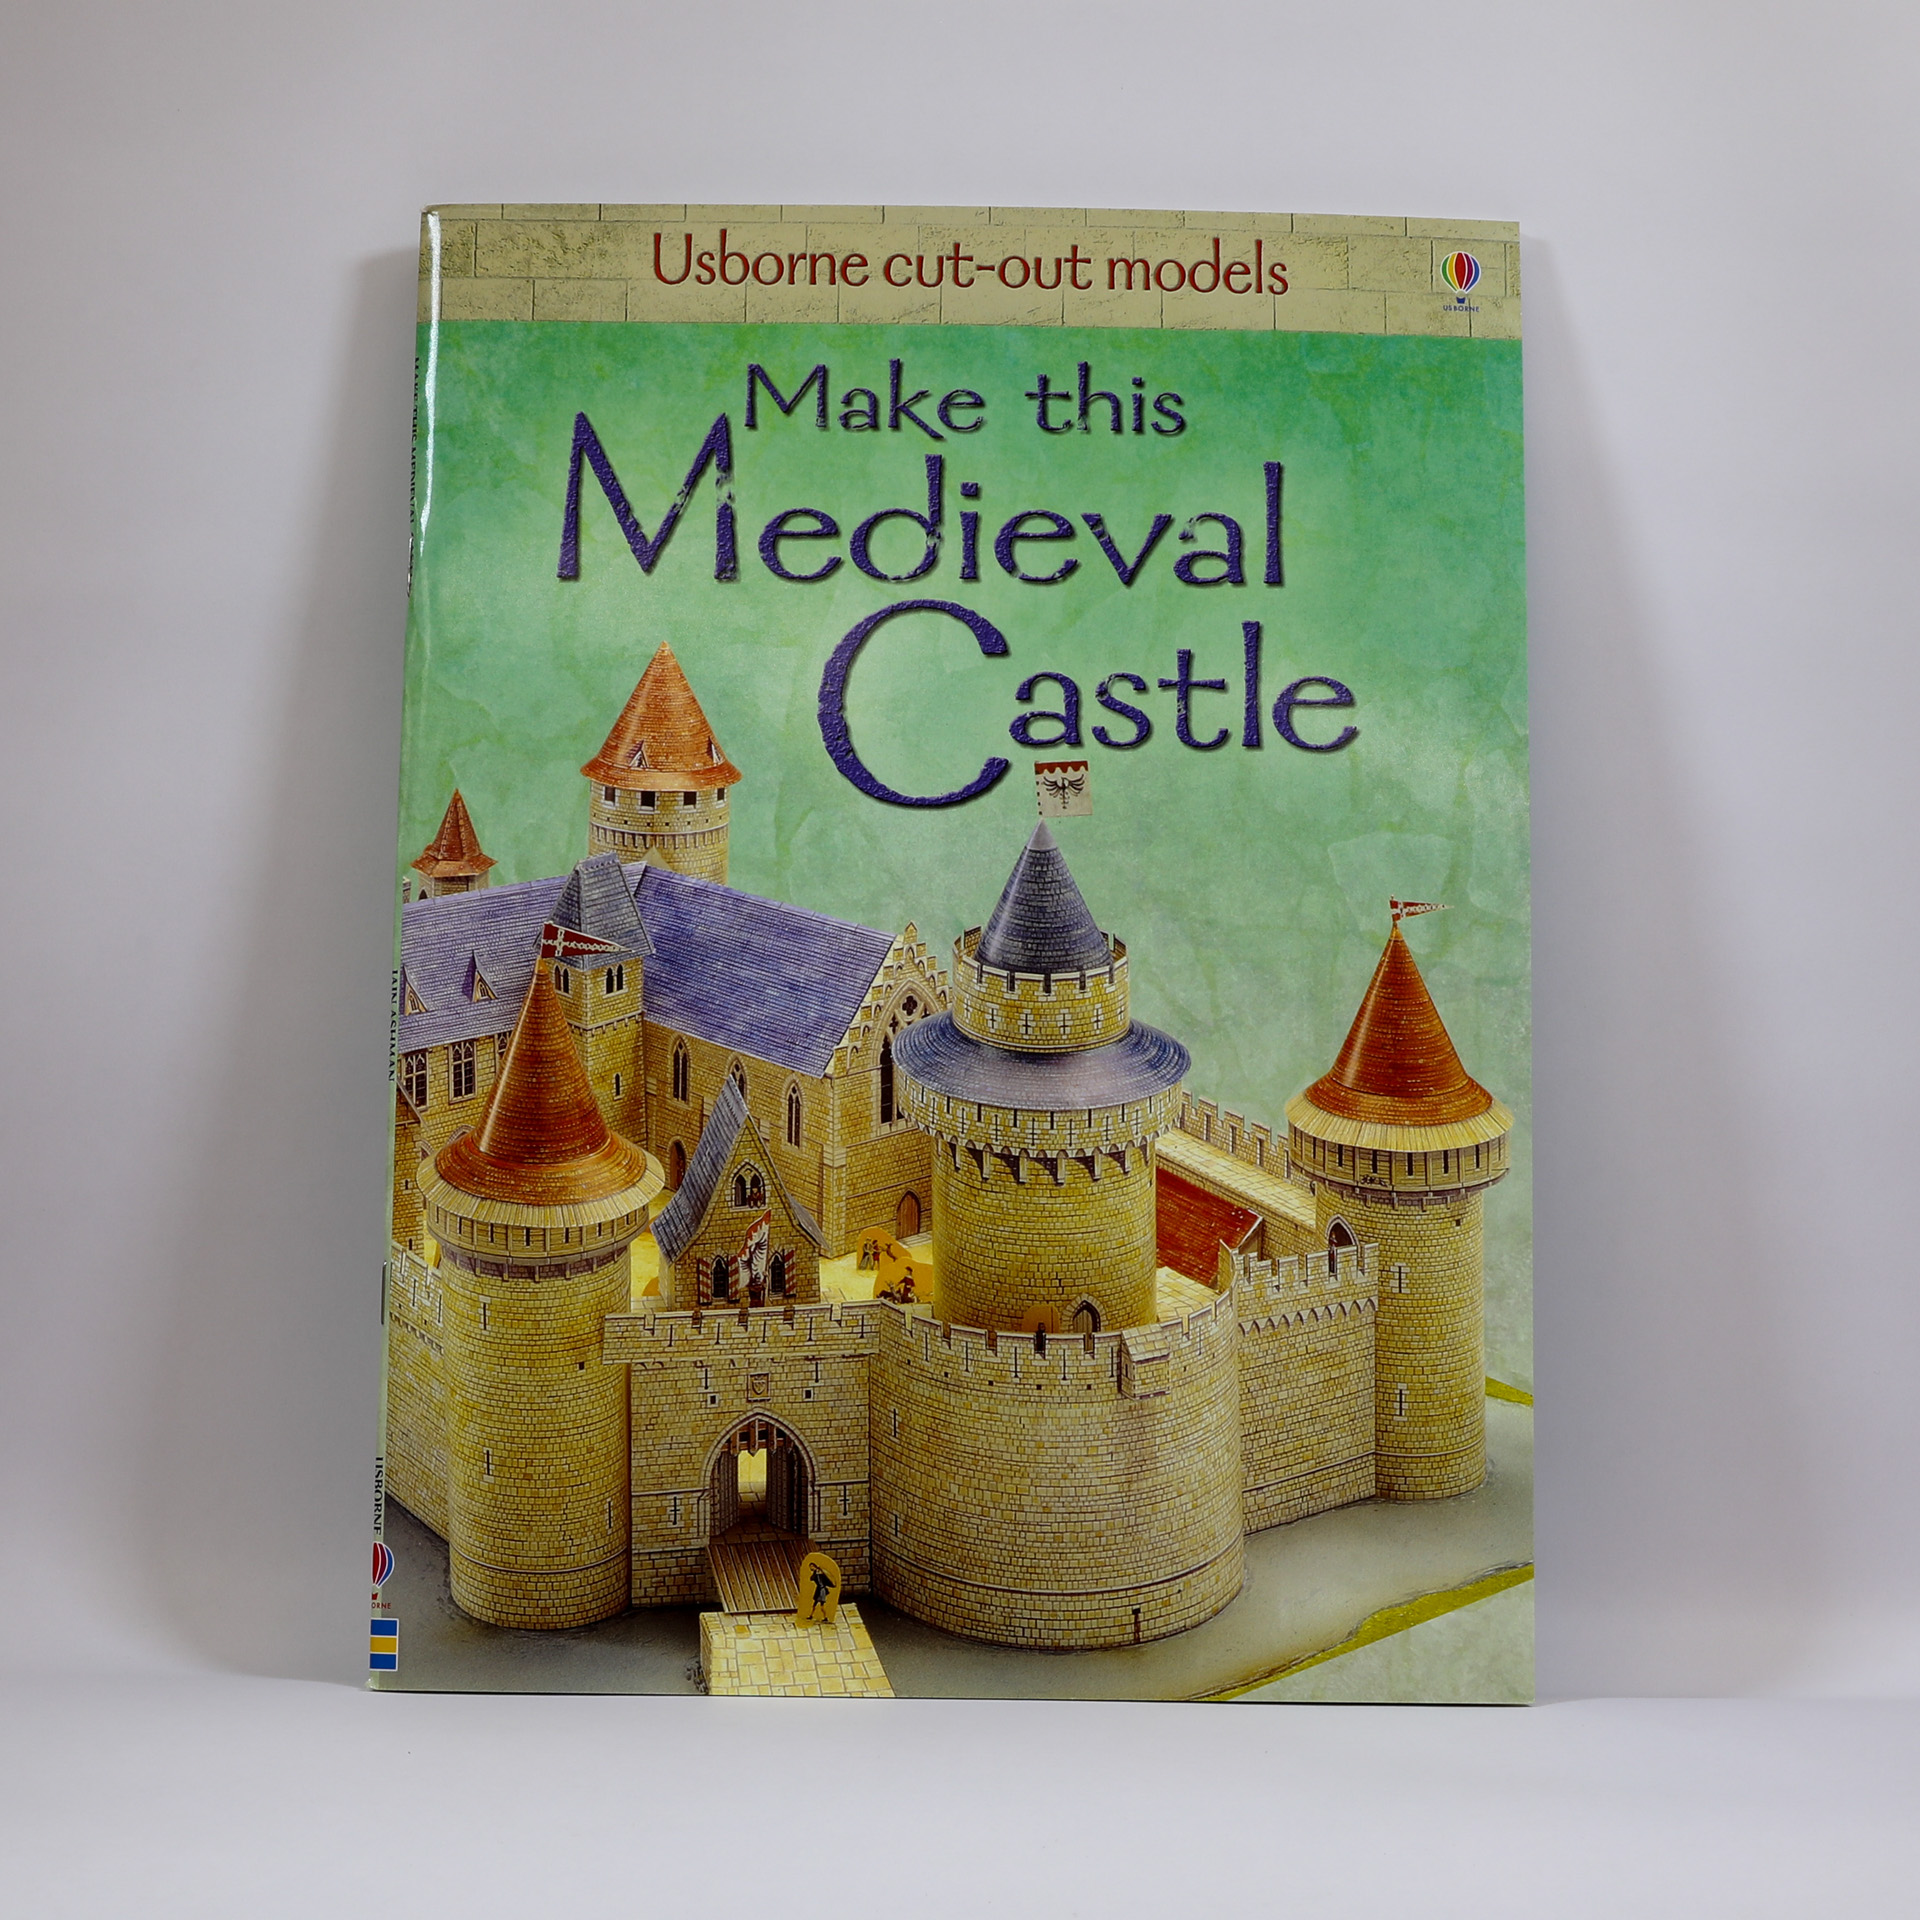 Make this Medieval Castle